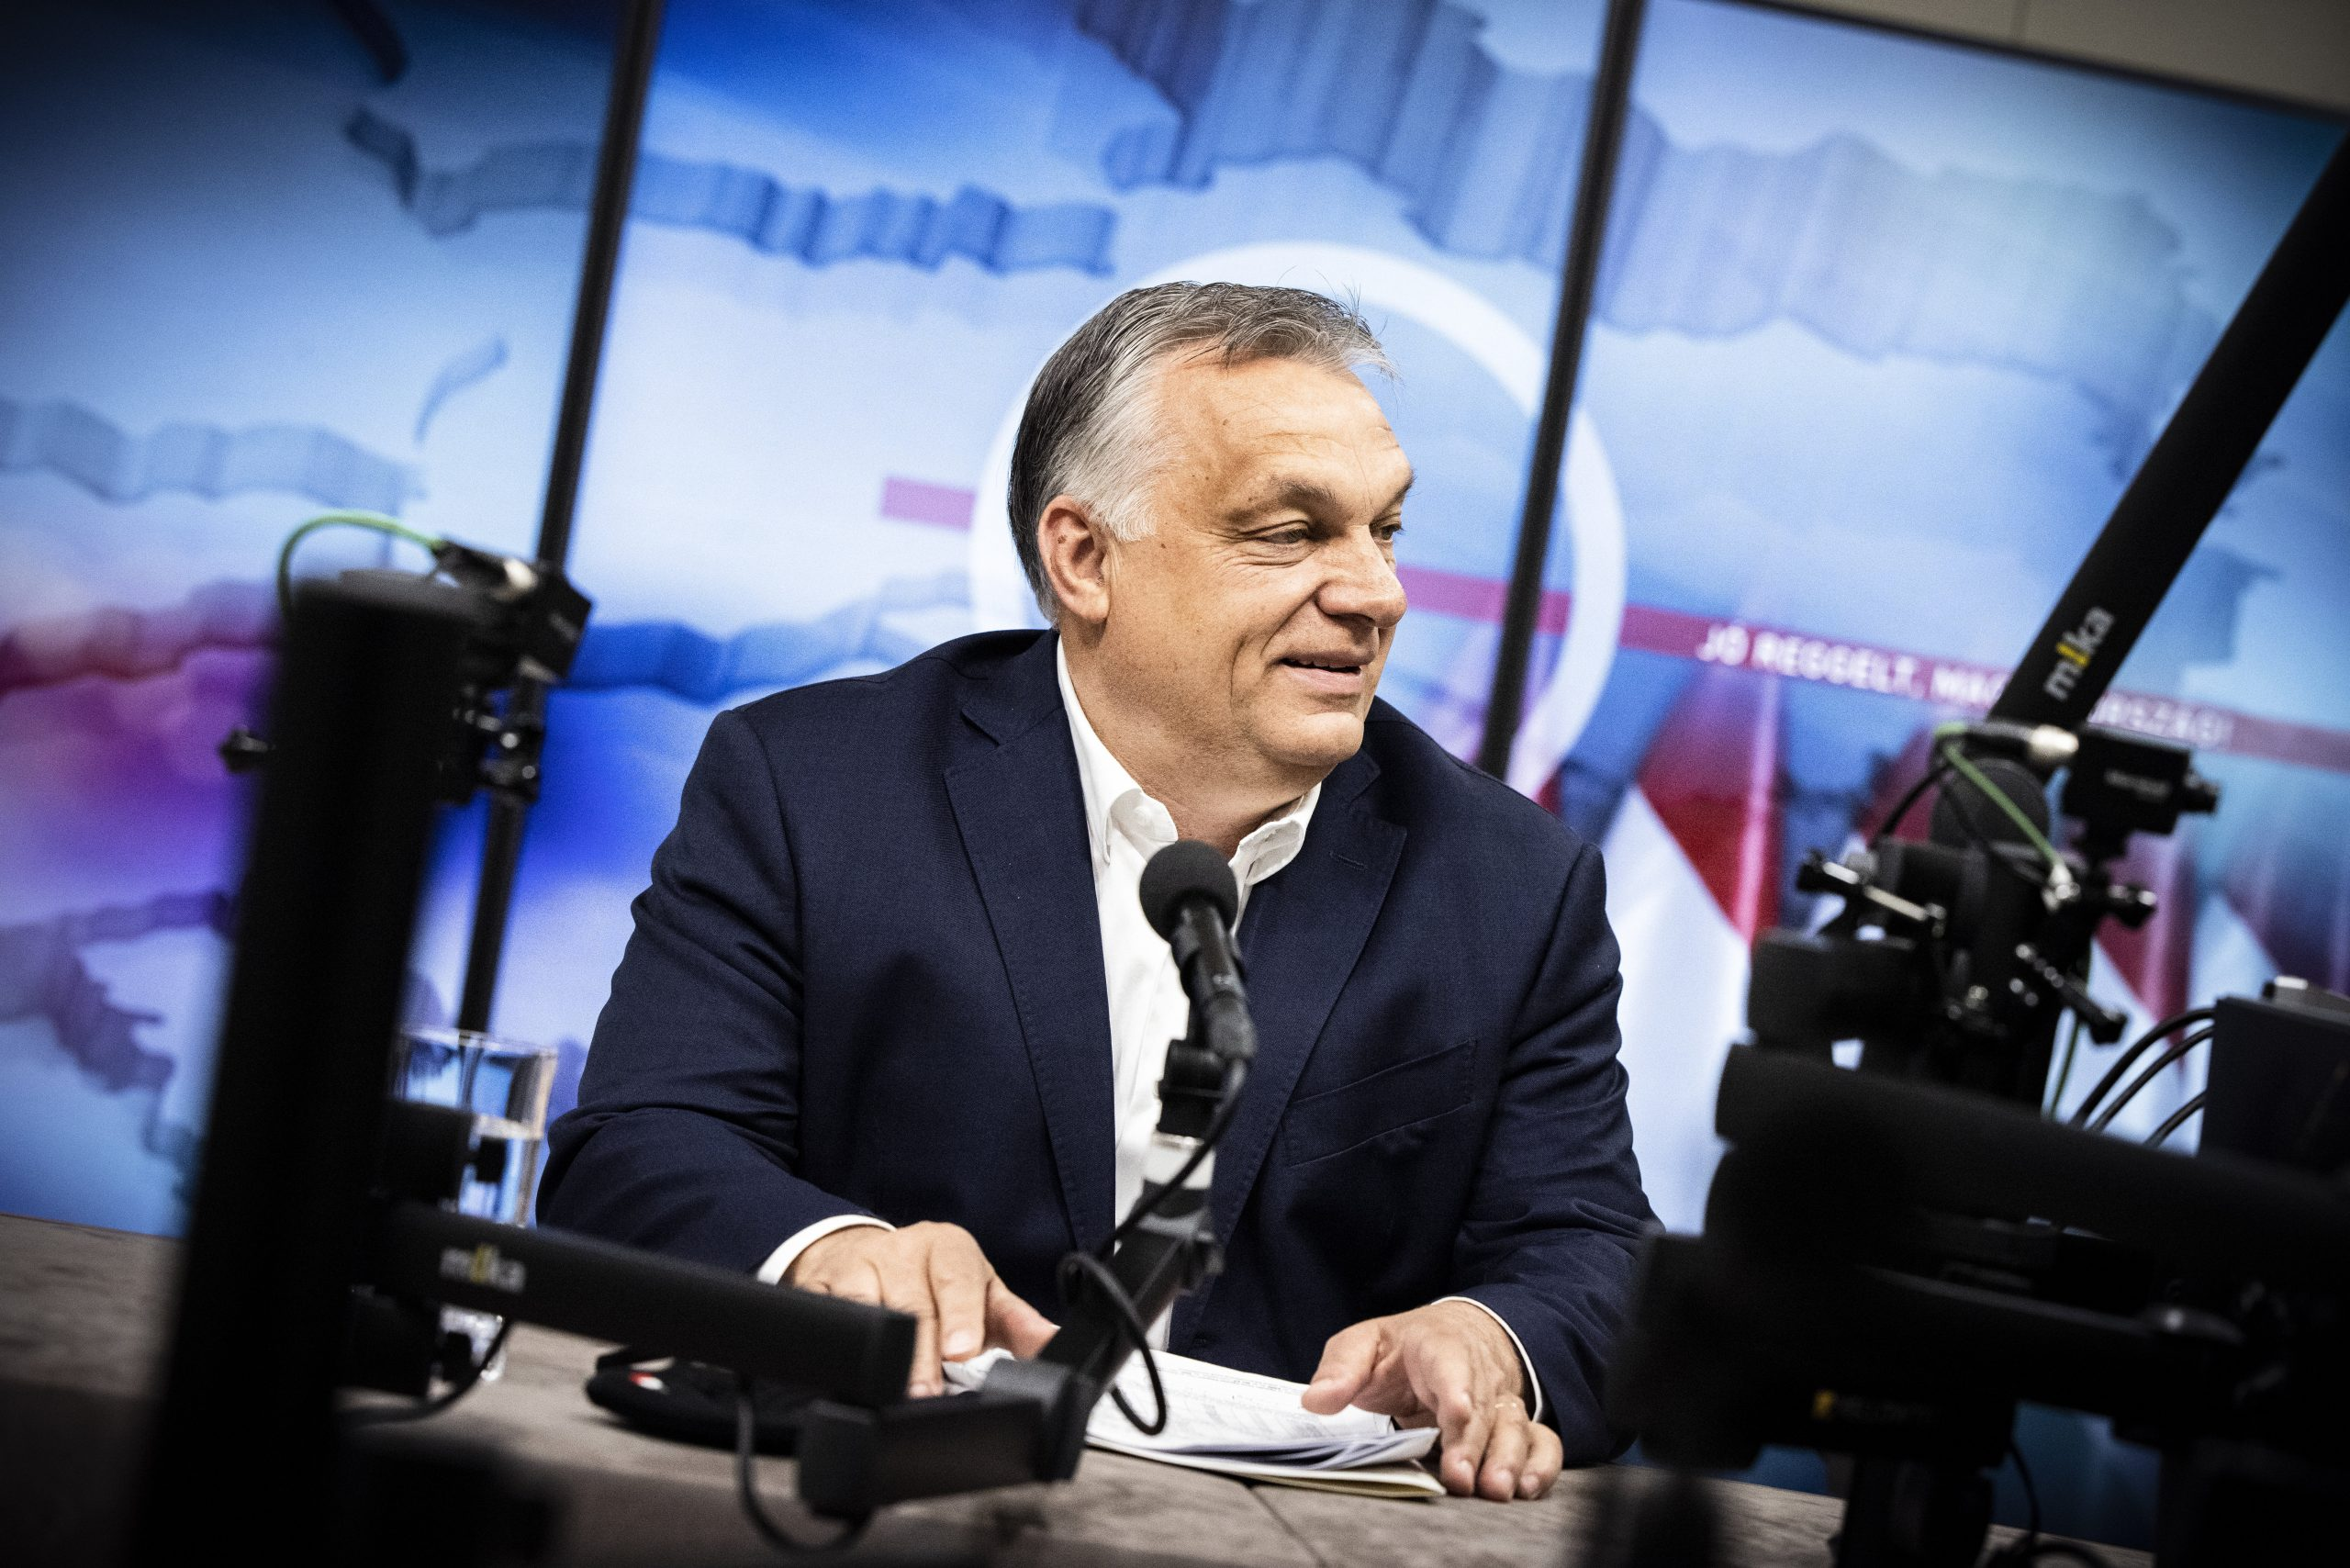 Orbán Announces Many Restrictions to be Lifted